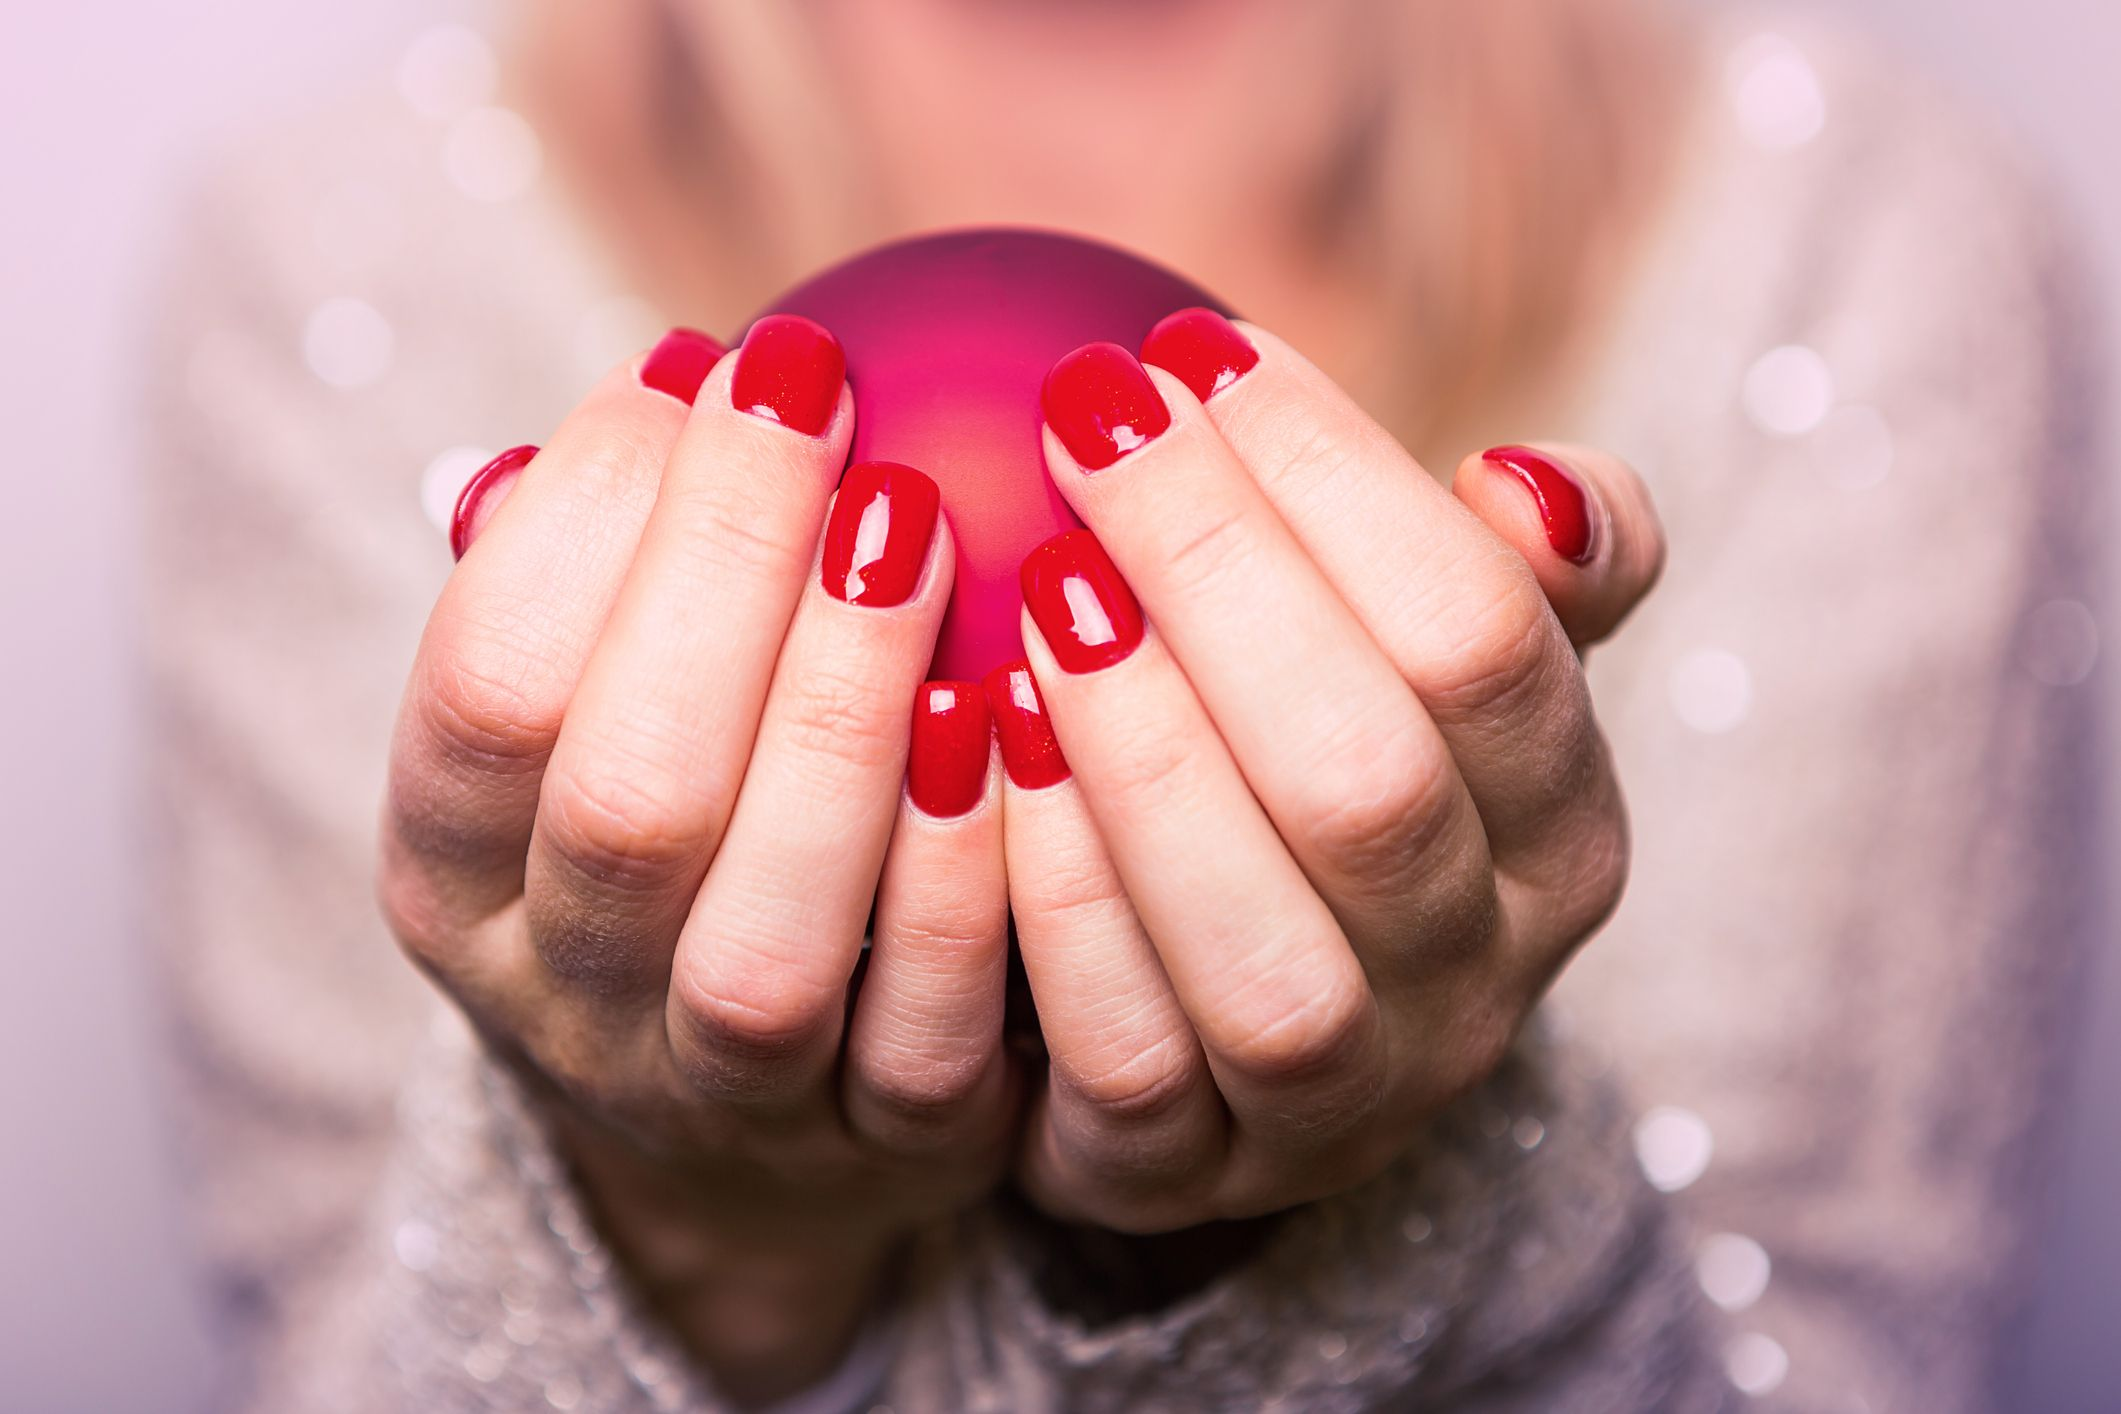 13 Best Red Nail Polish Colors Best Red Shades For Nails 2020